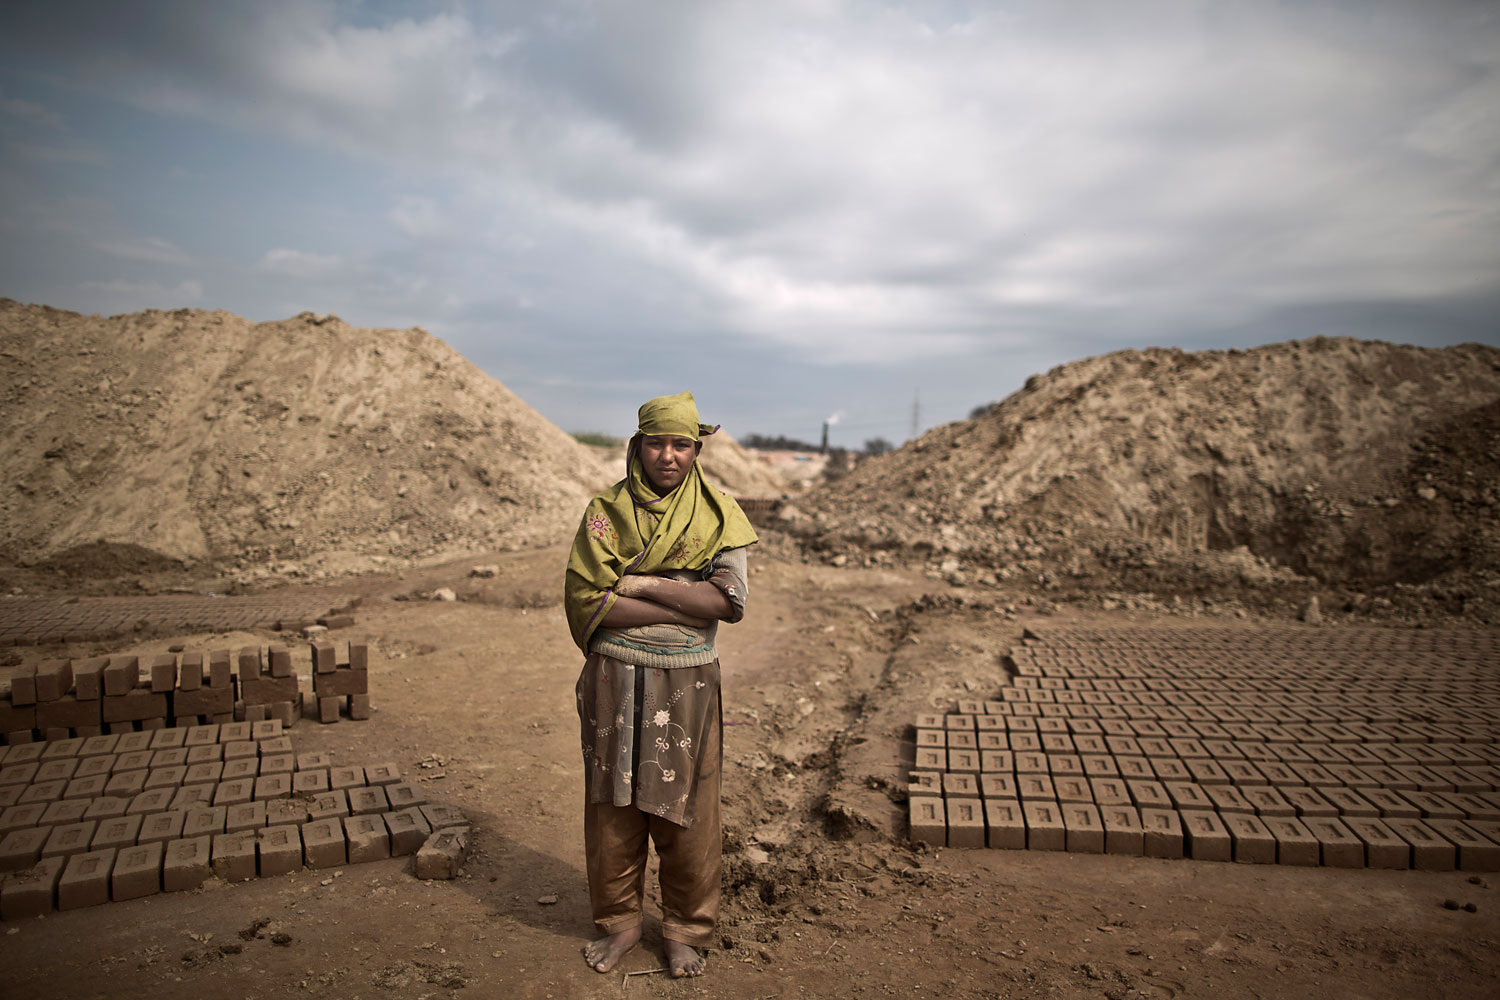 Naila Liyaqat, 16, a Pakistani brick factory worker, poses for a picture at the site of her work in Mandra, near Rawalpindi, Pakistan, March 5, 2014. Naila's father is in debt to his employer the amount of 300,000 rupees (approximately $3000).